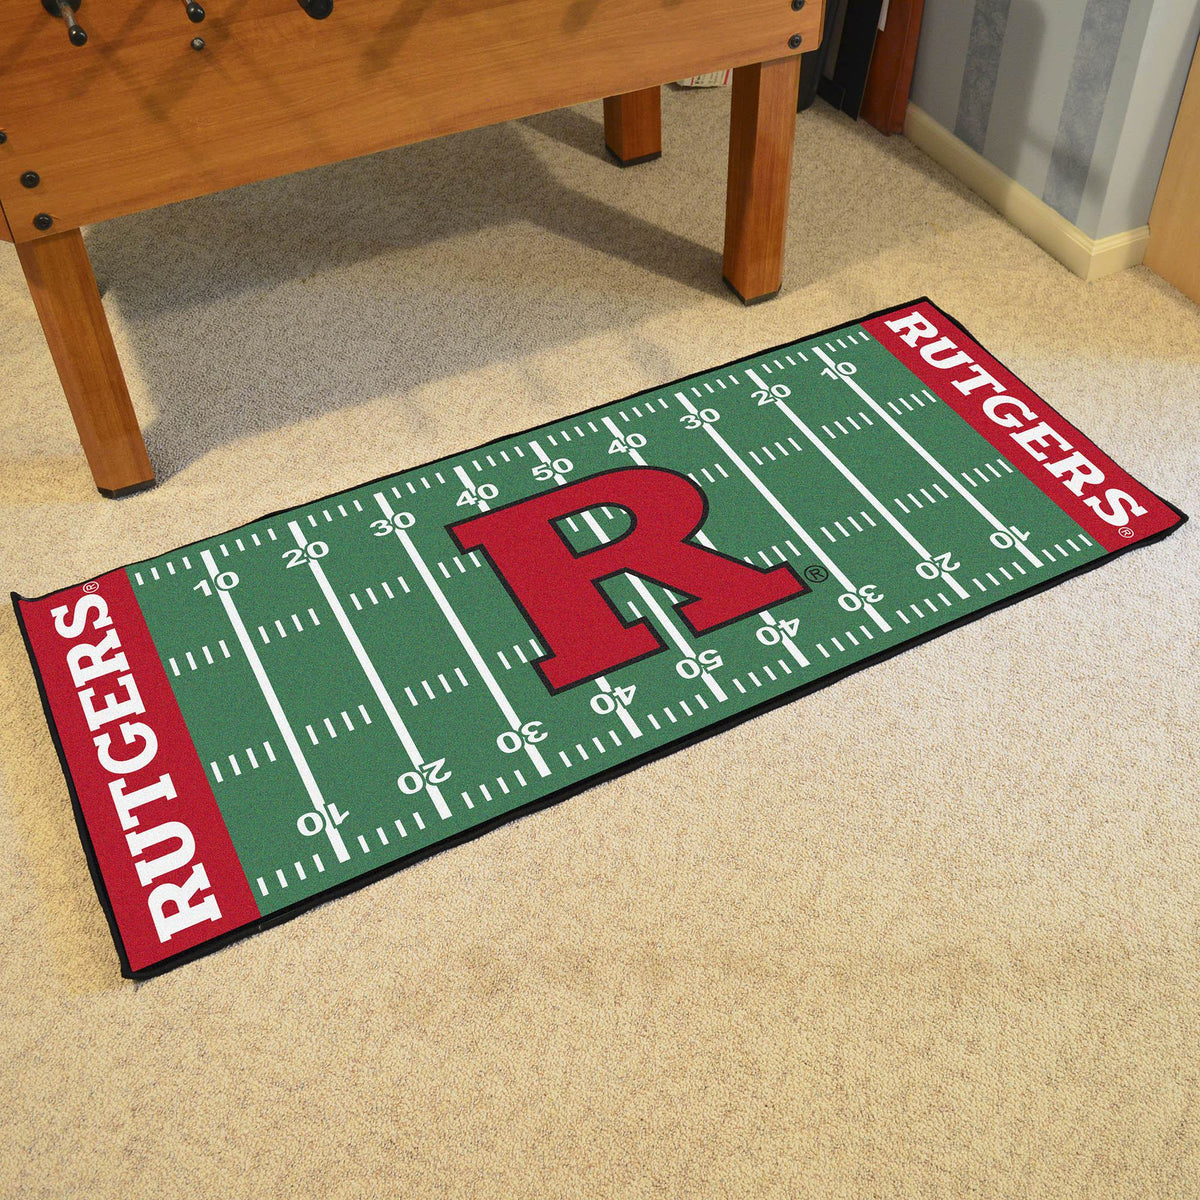 Collegiate - Football Field Runner Collegiate Mats, Rectangular Mats, Football Field Runner, Collegiate, Home Fan Mats Rutgers